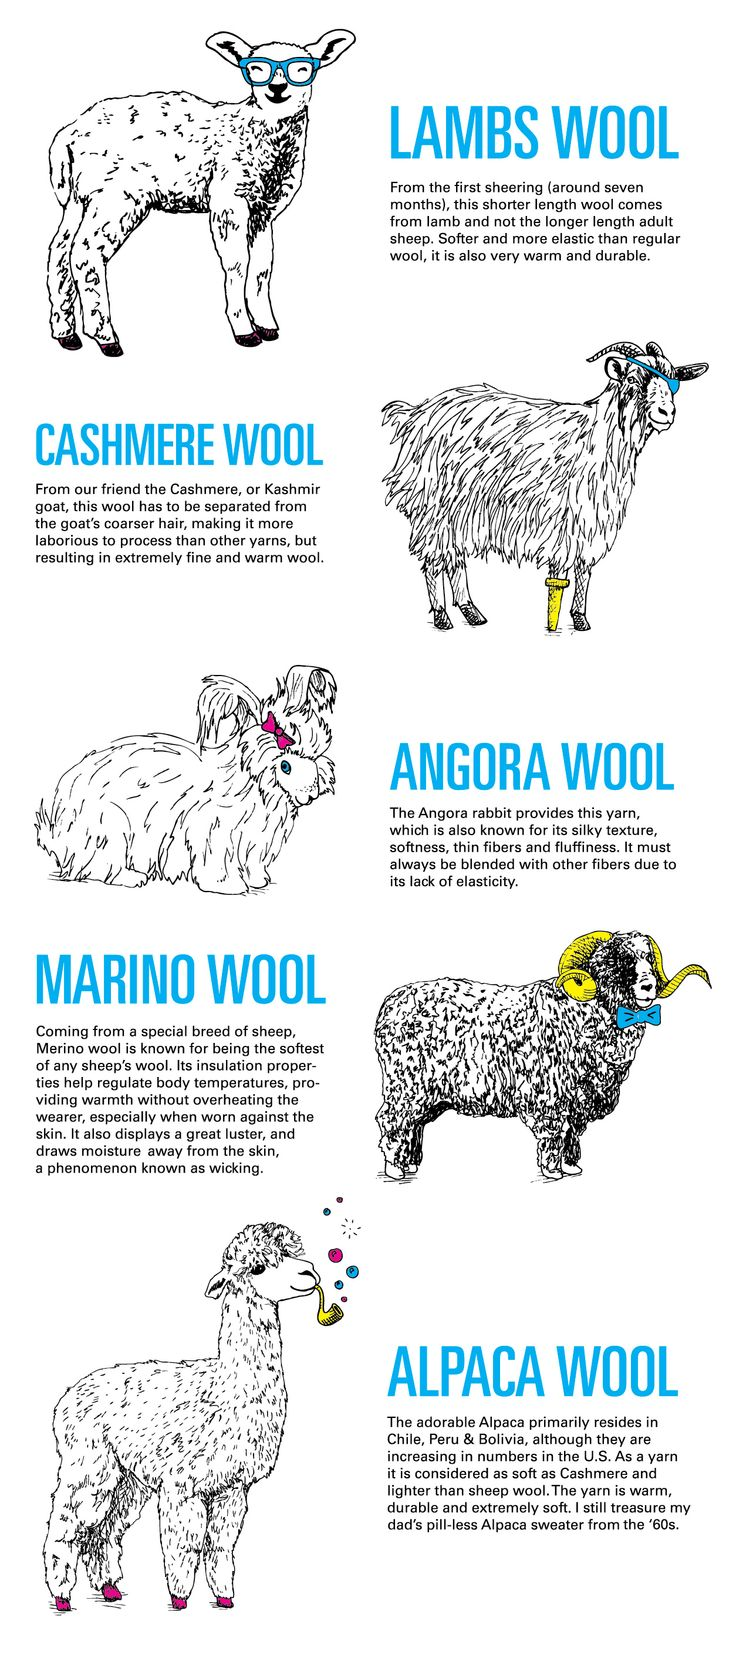 Know your wool!